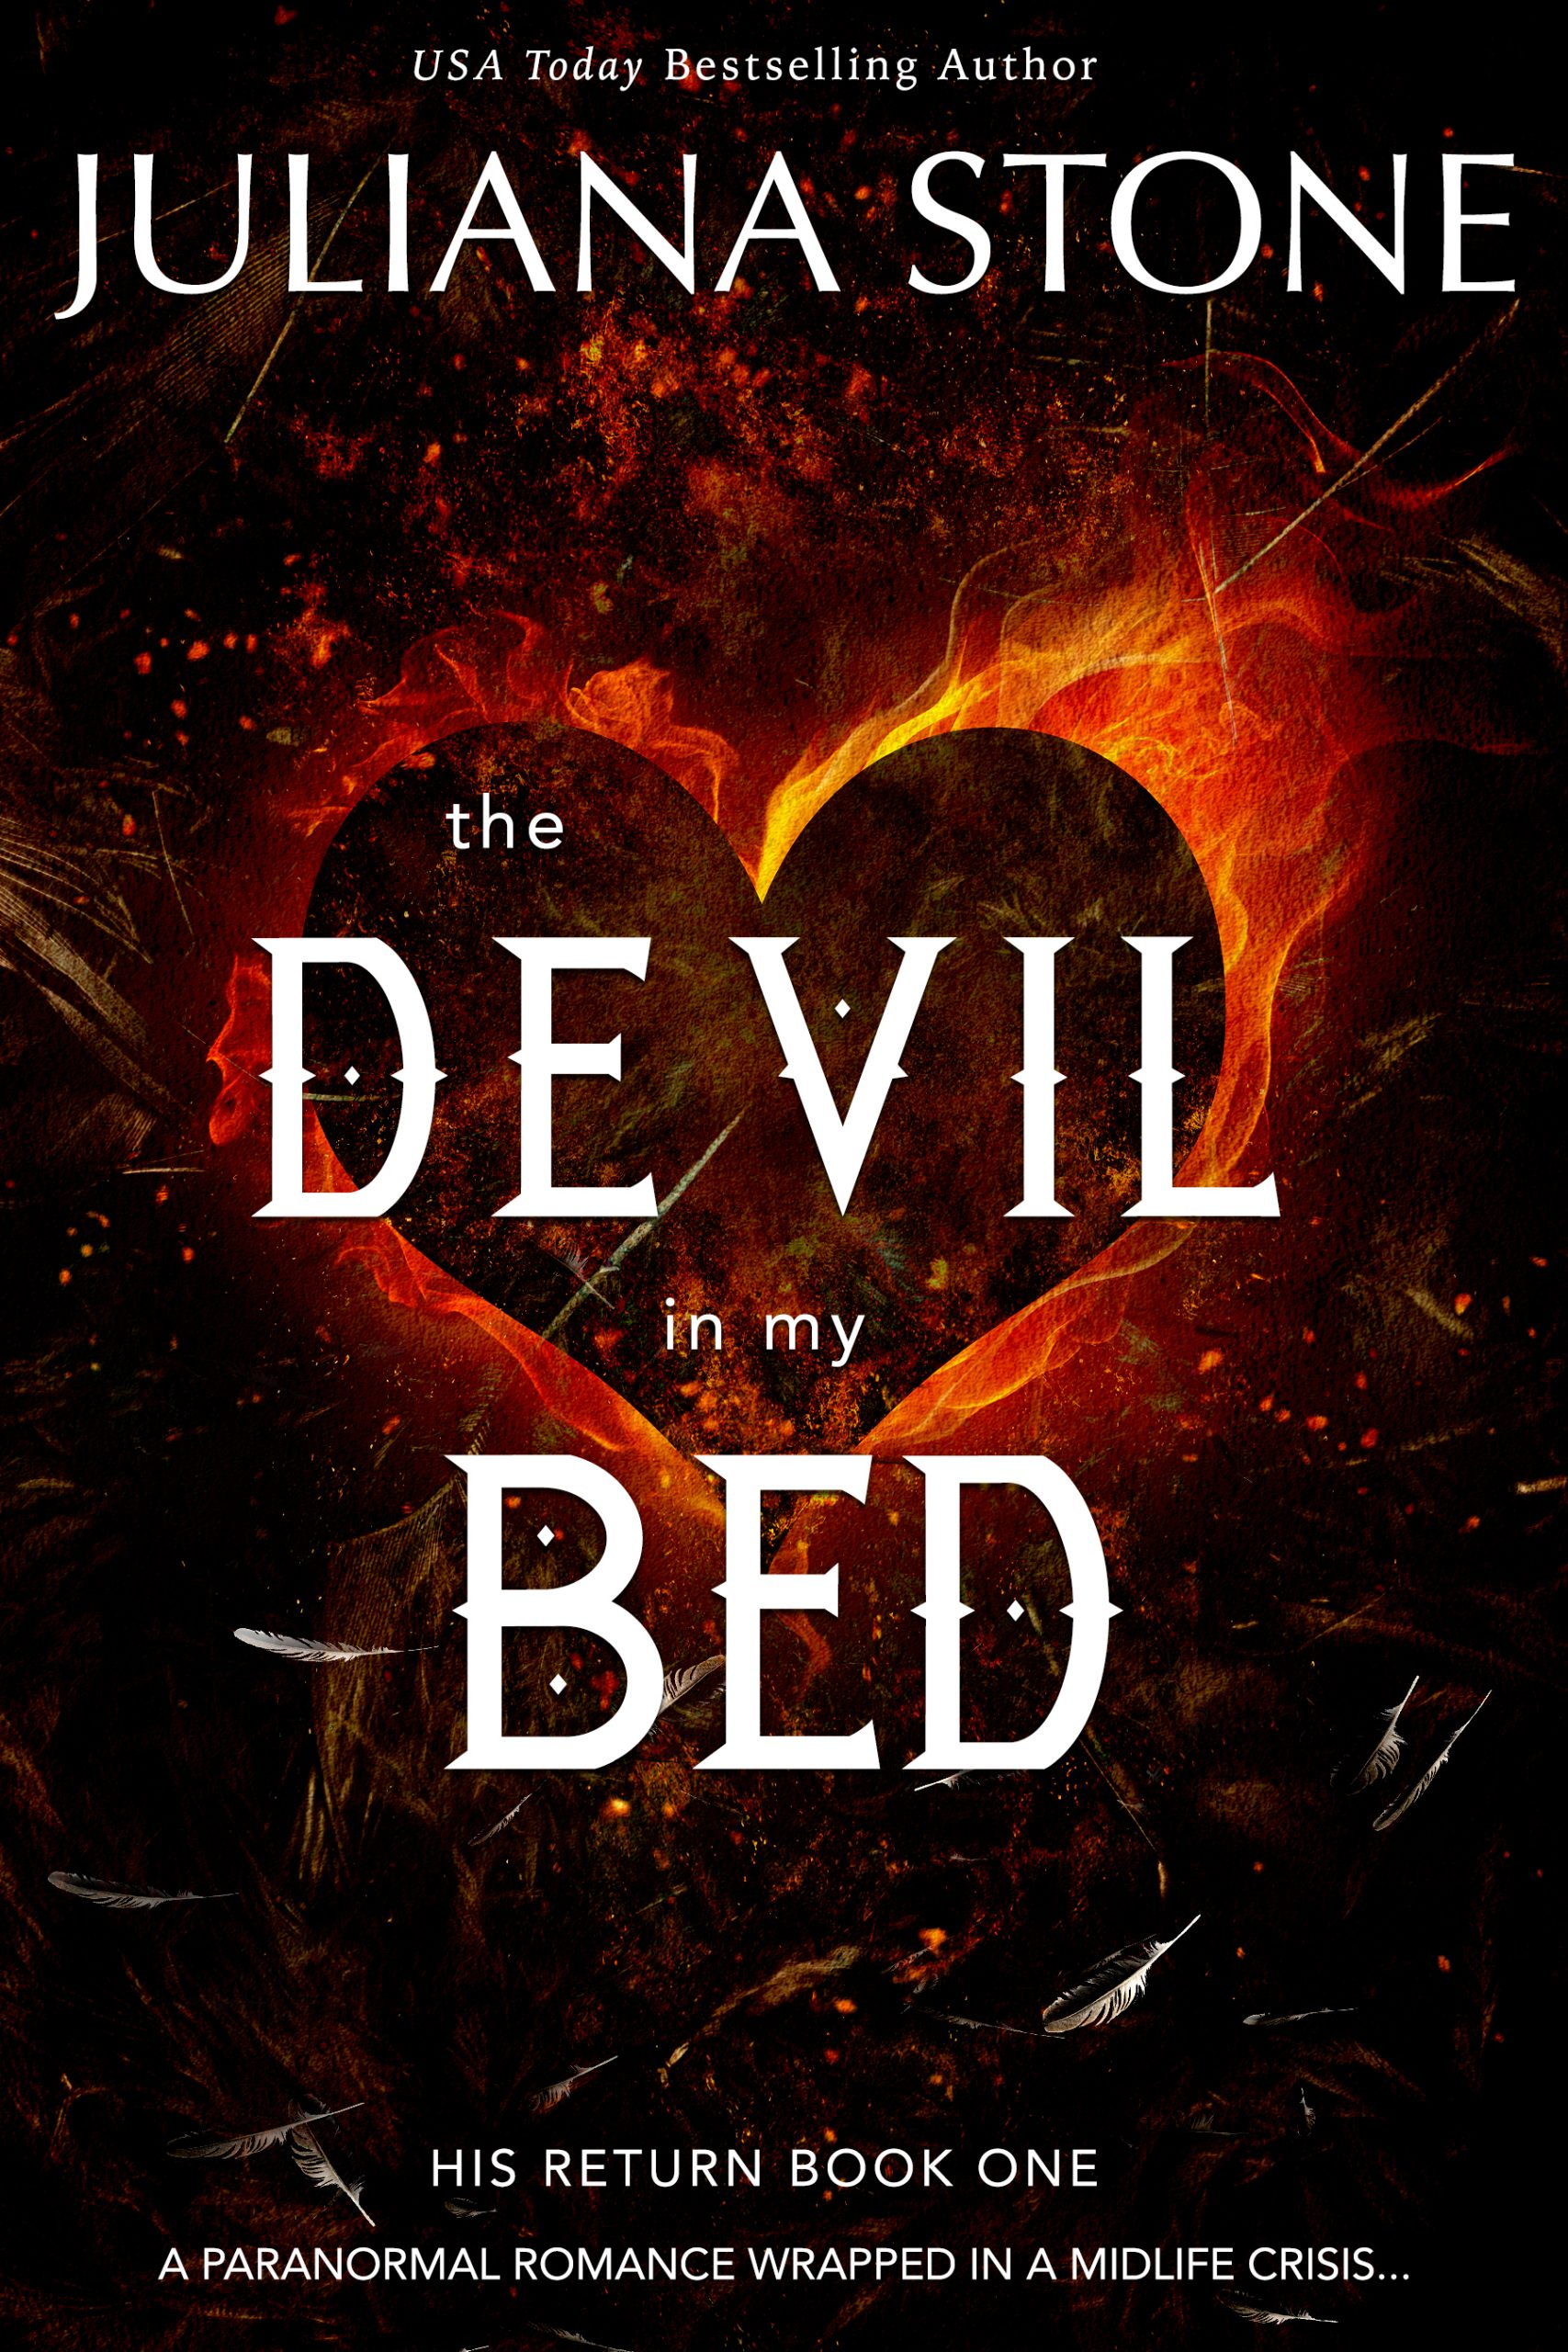 The Devil In My Bed: A Paranormal Women's Fiction Novel by Juliana Stone